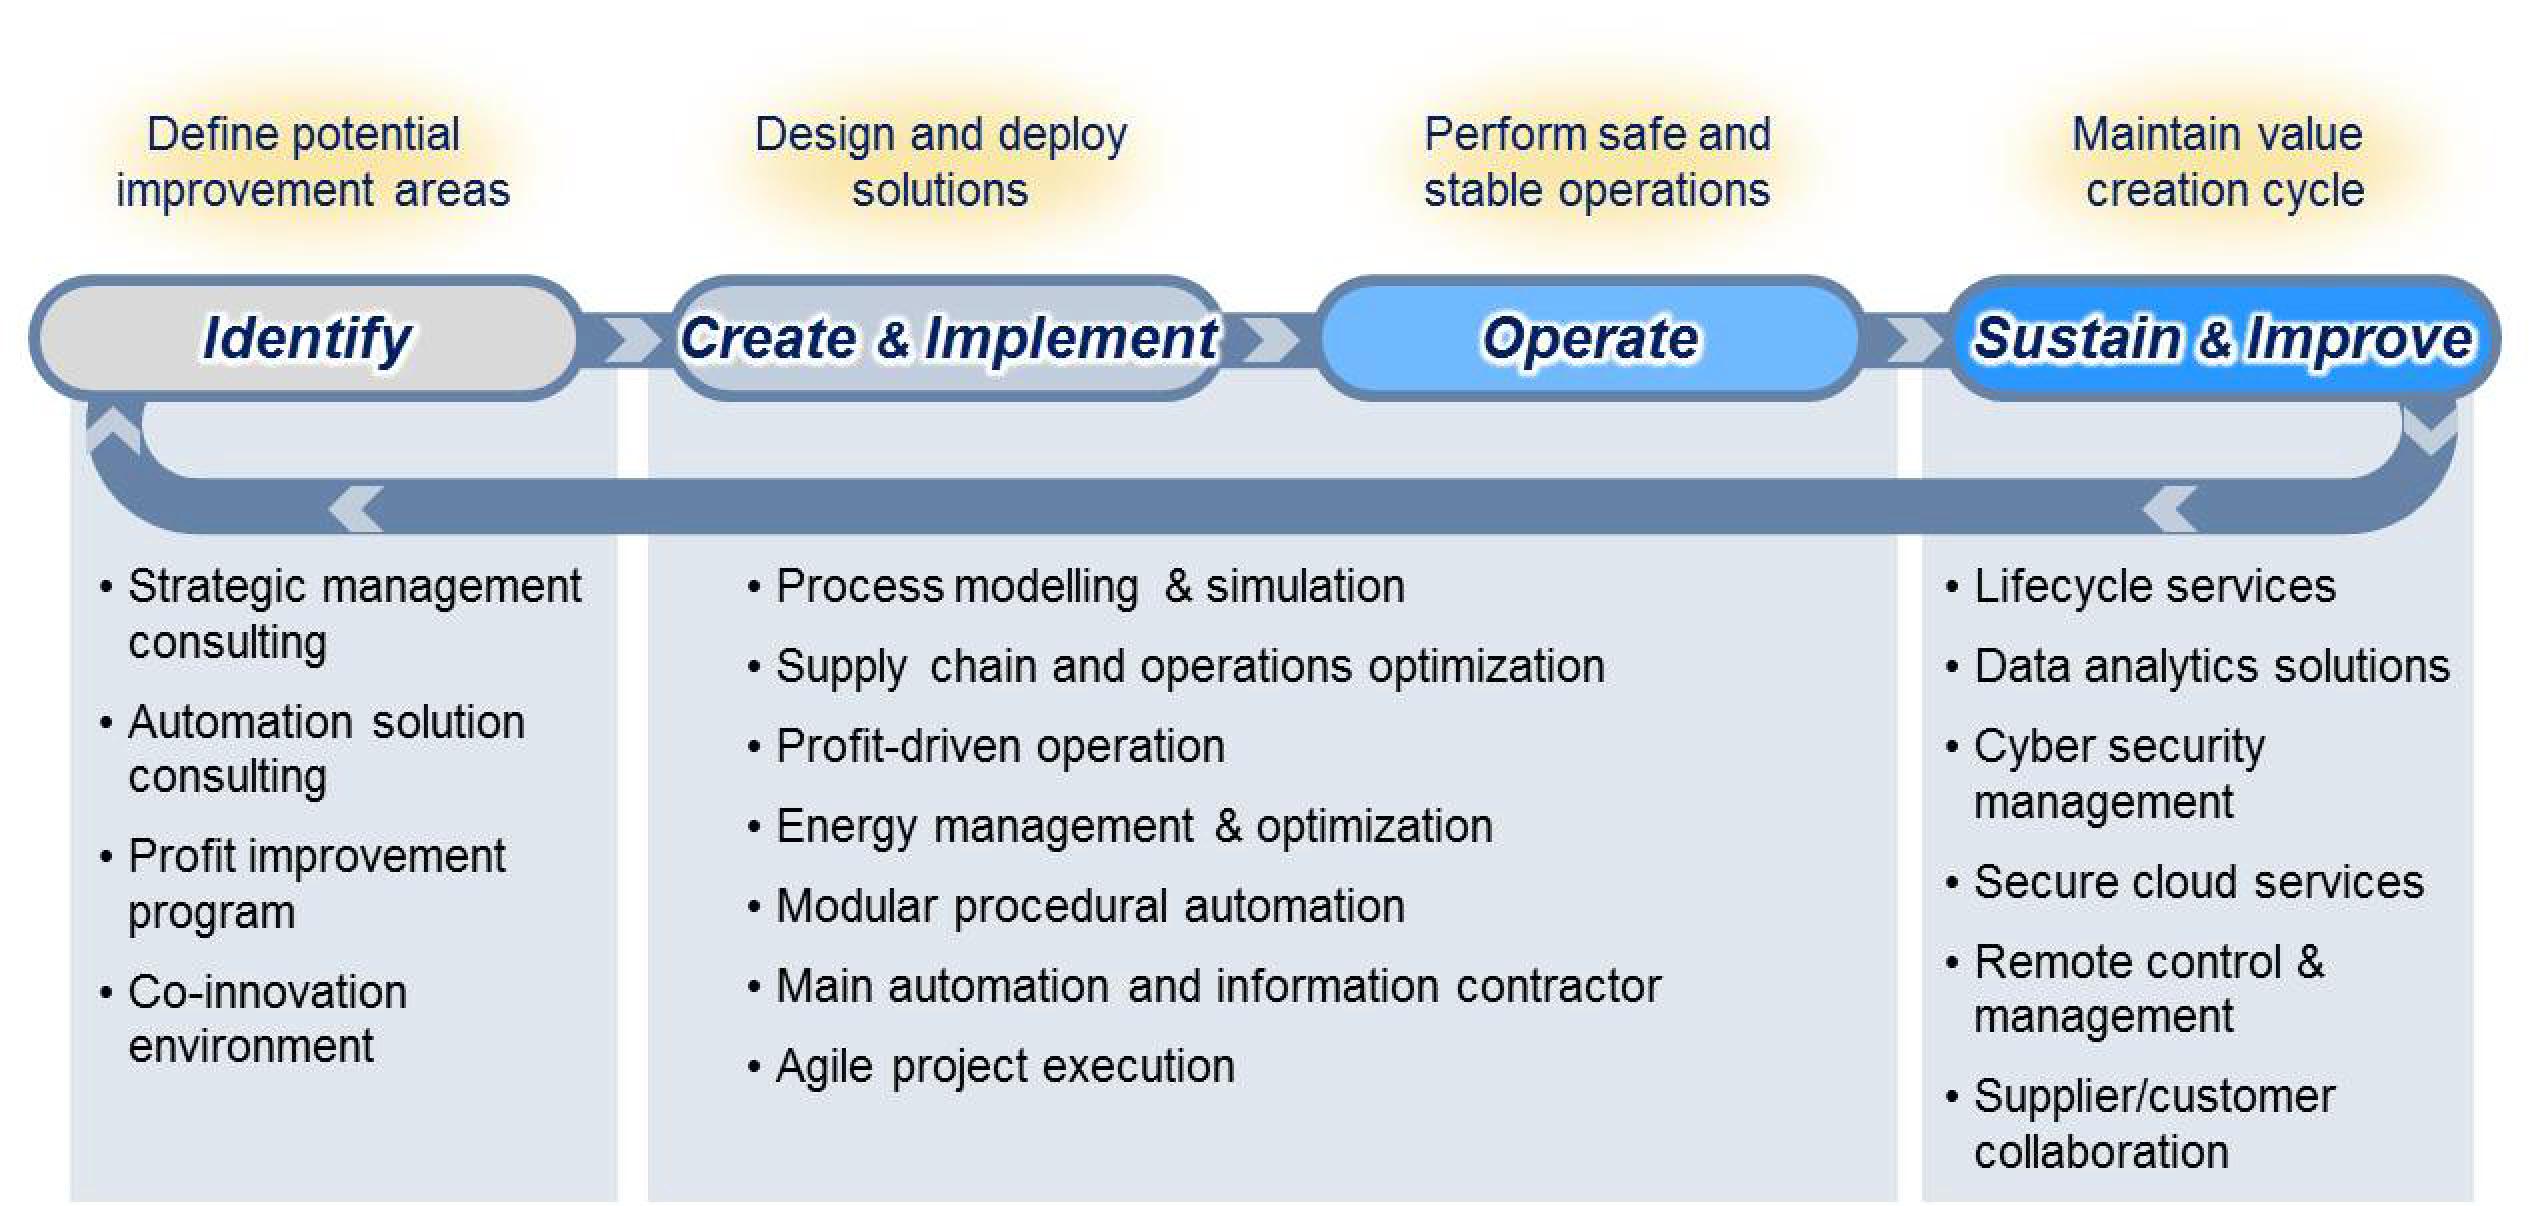 continuous value creation cycle with key solutions